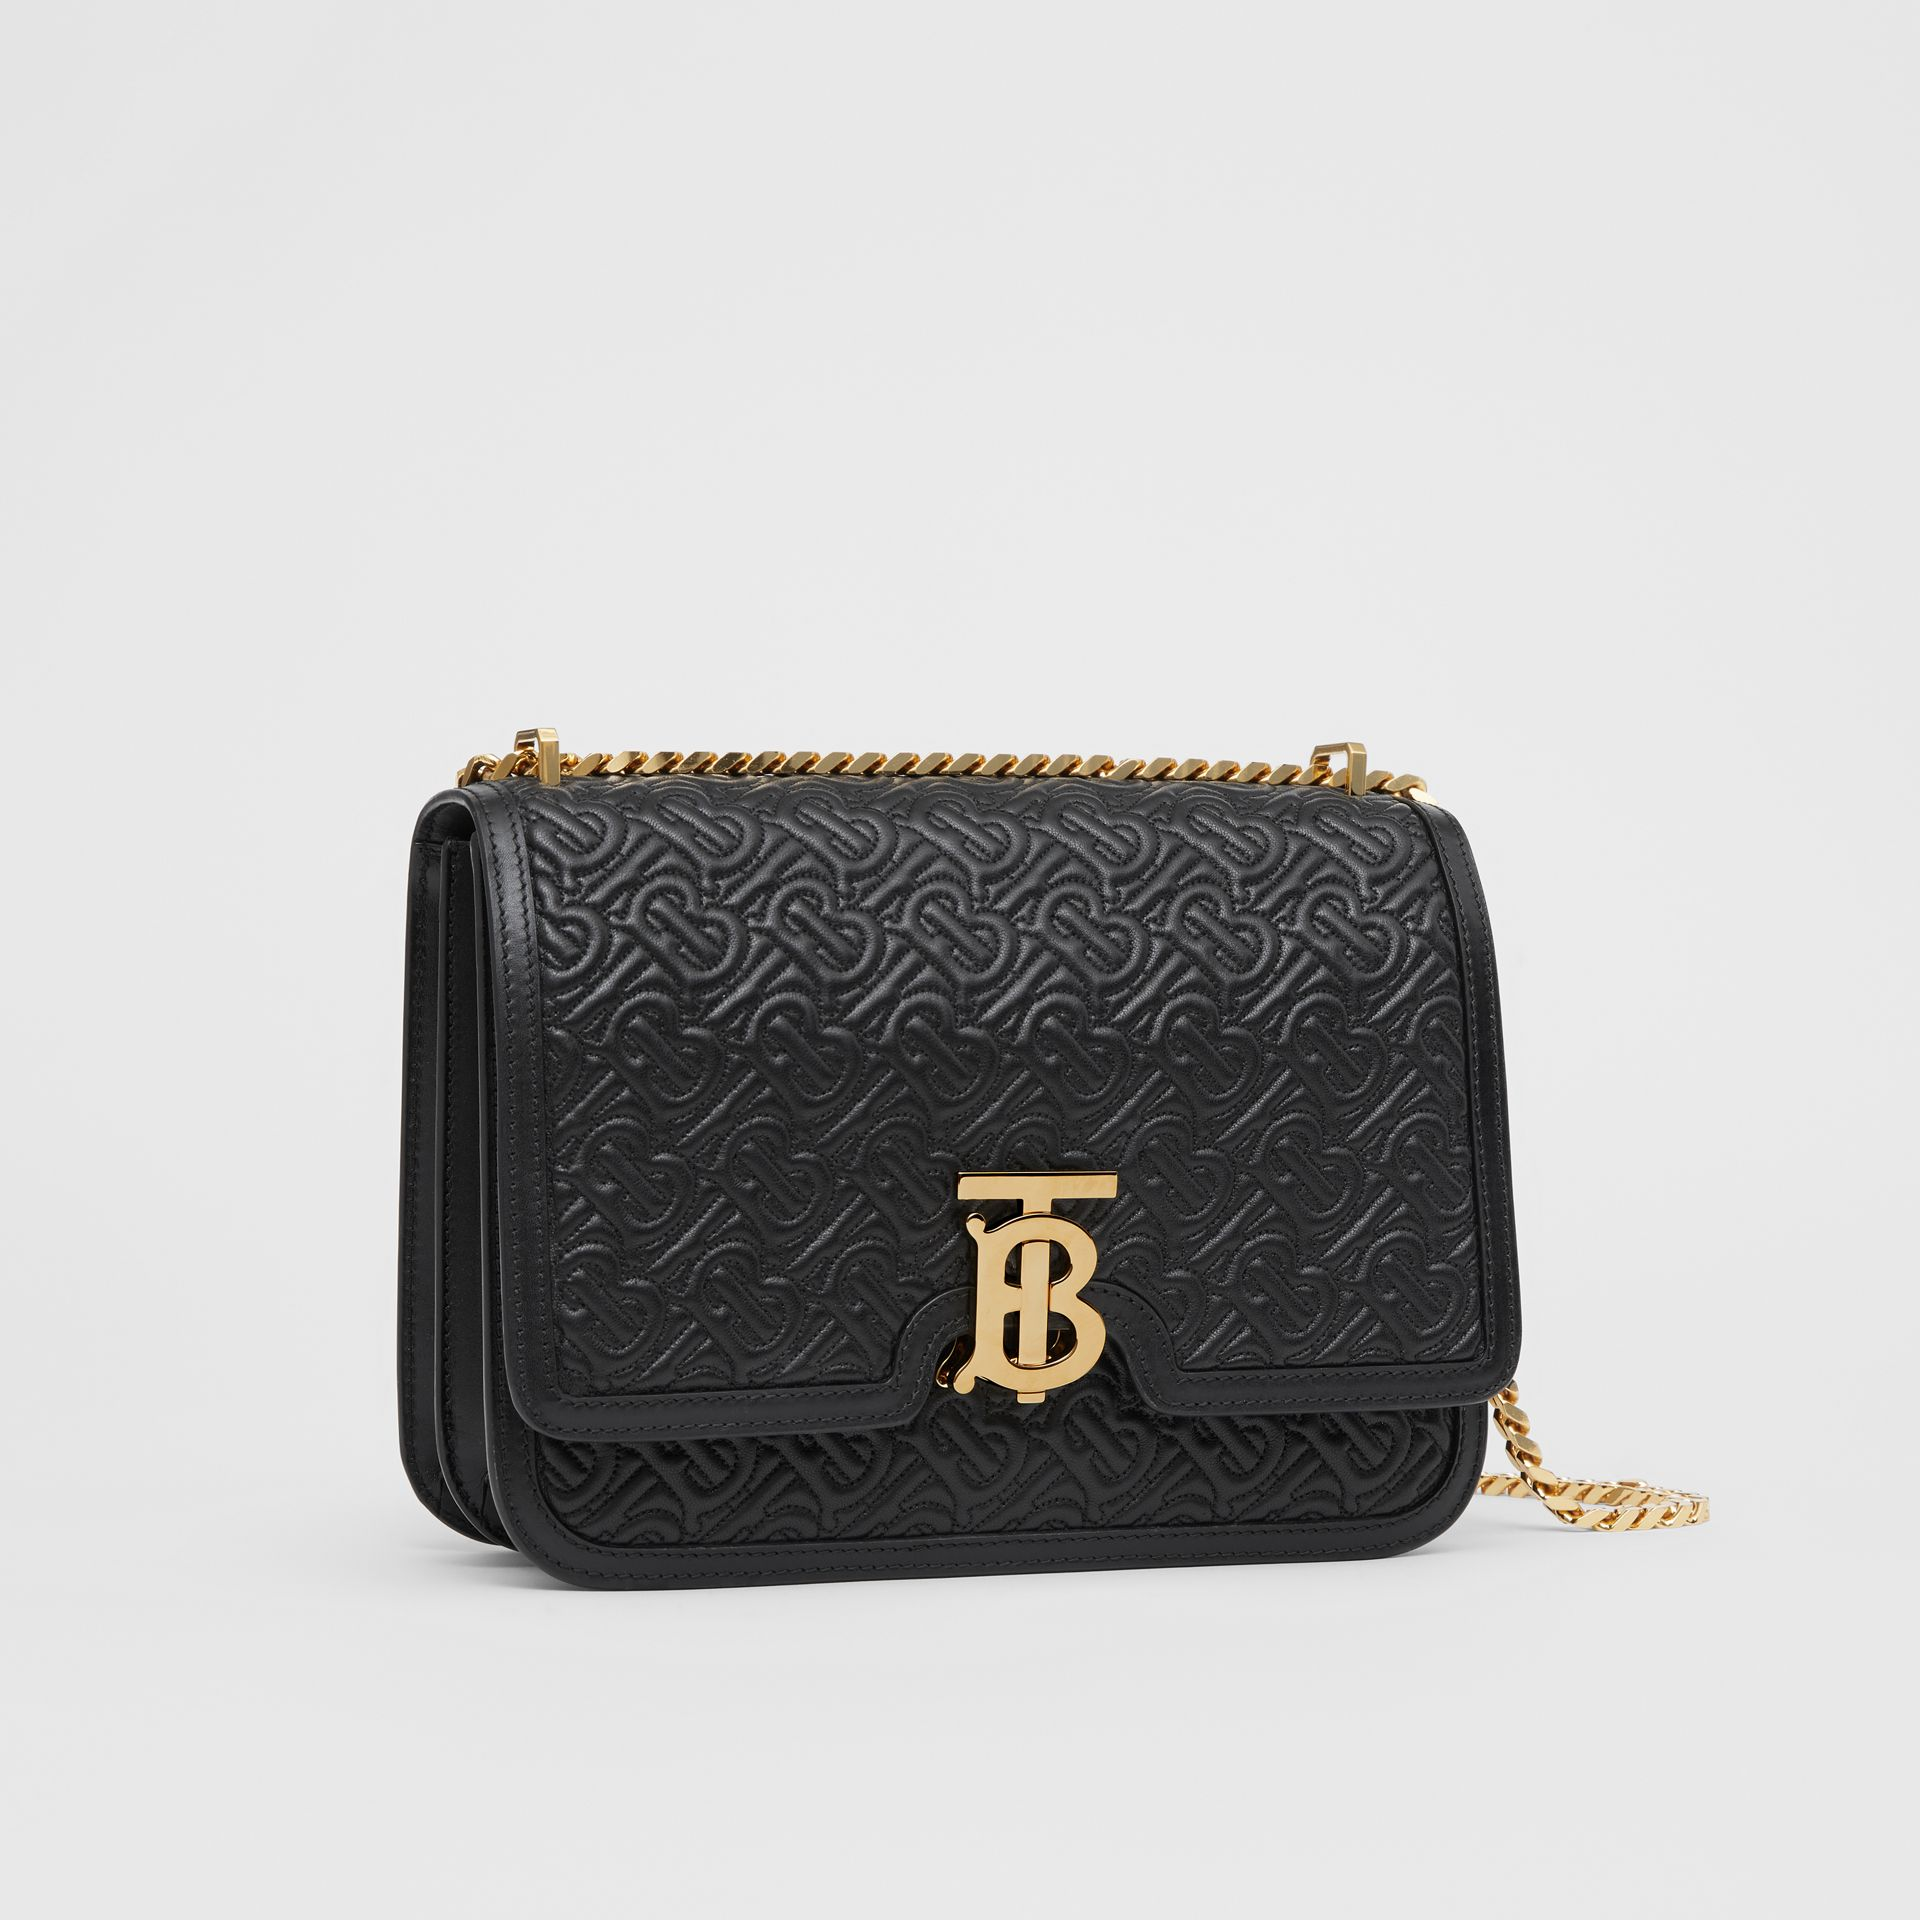 Medium Quilted Monogram Lambskin TB Bag in Black - Women | Burberry Singapore - gallery image 6